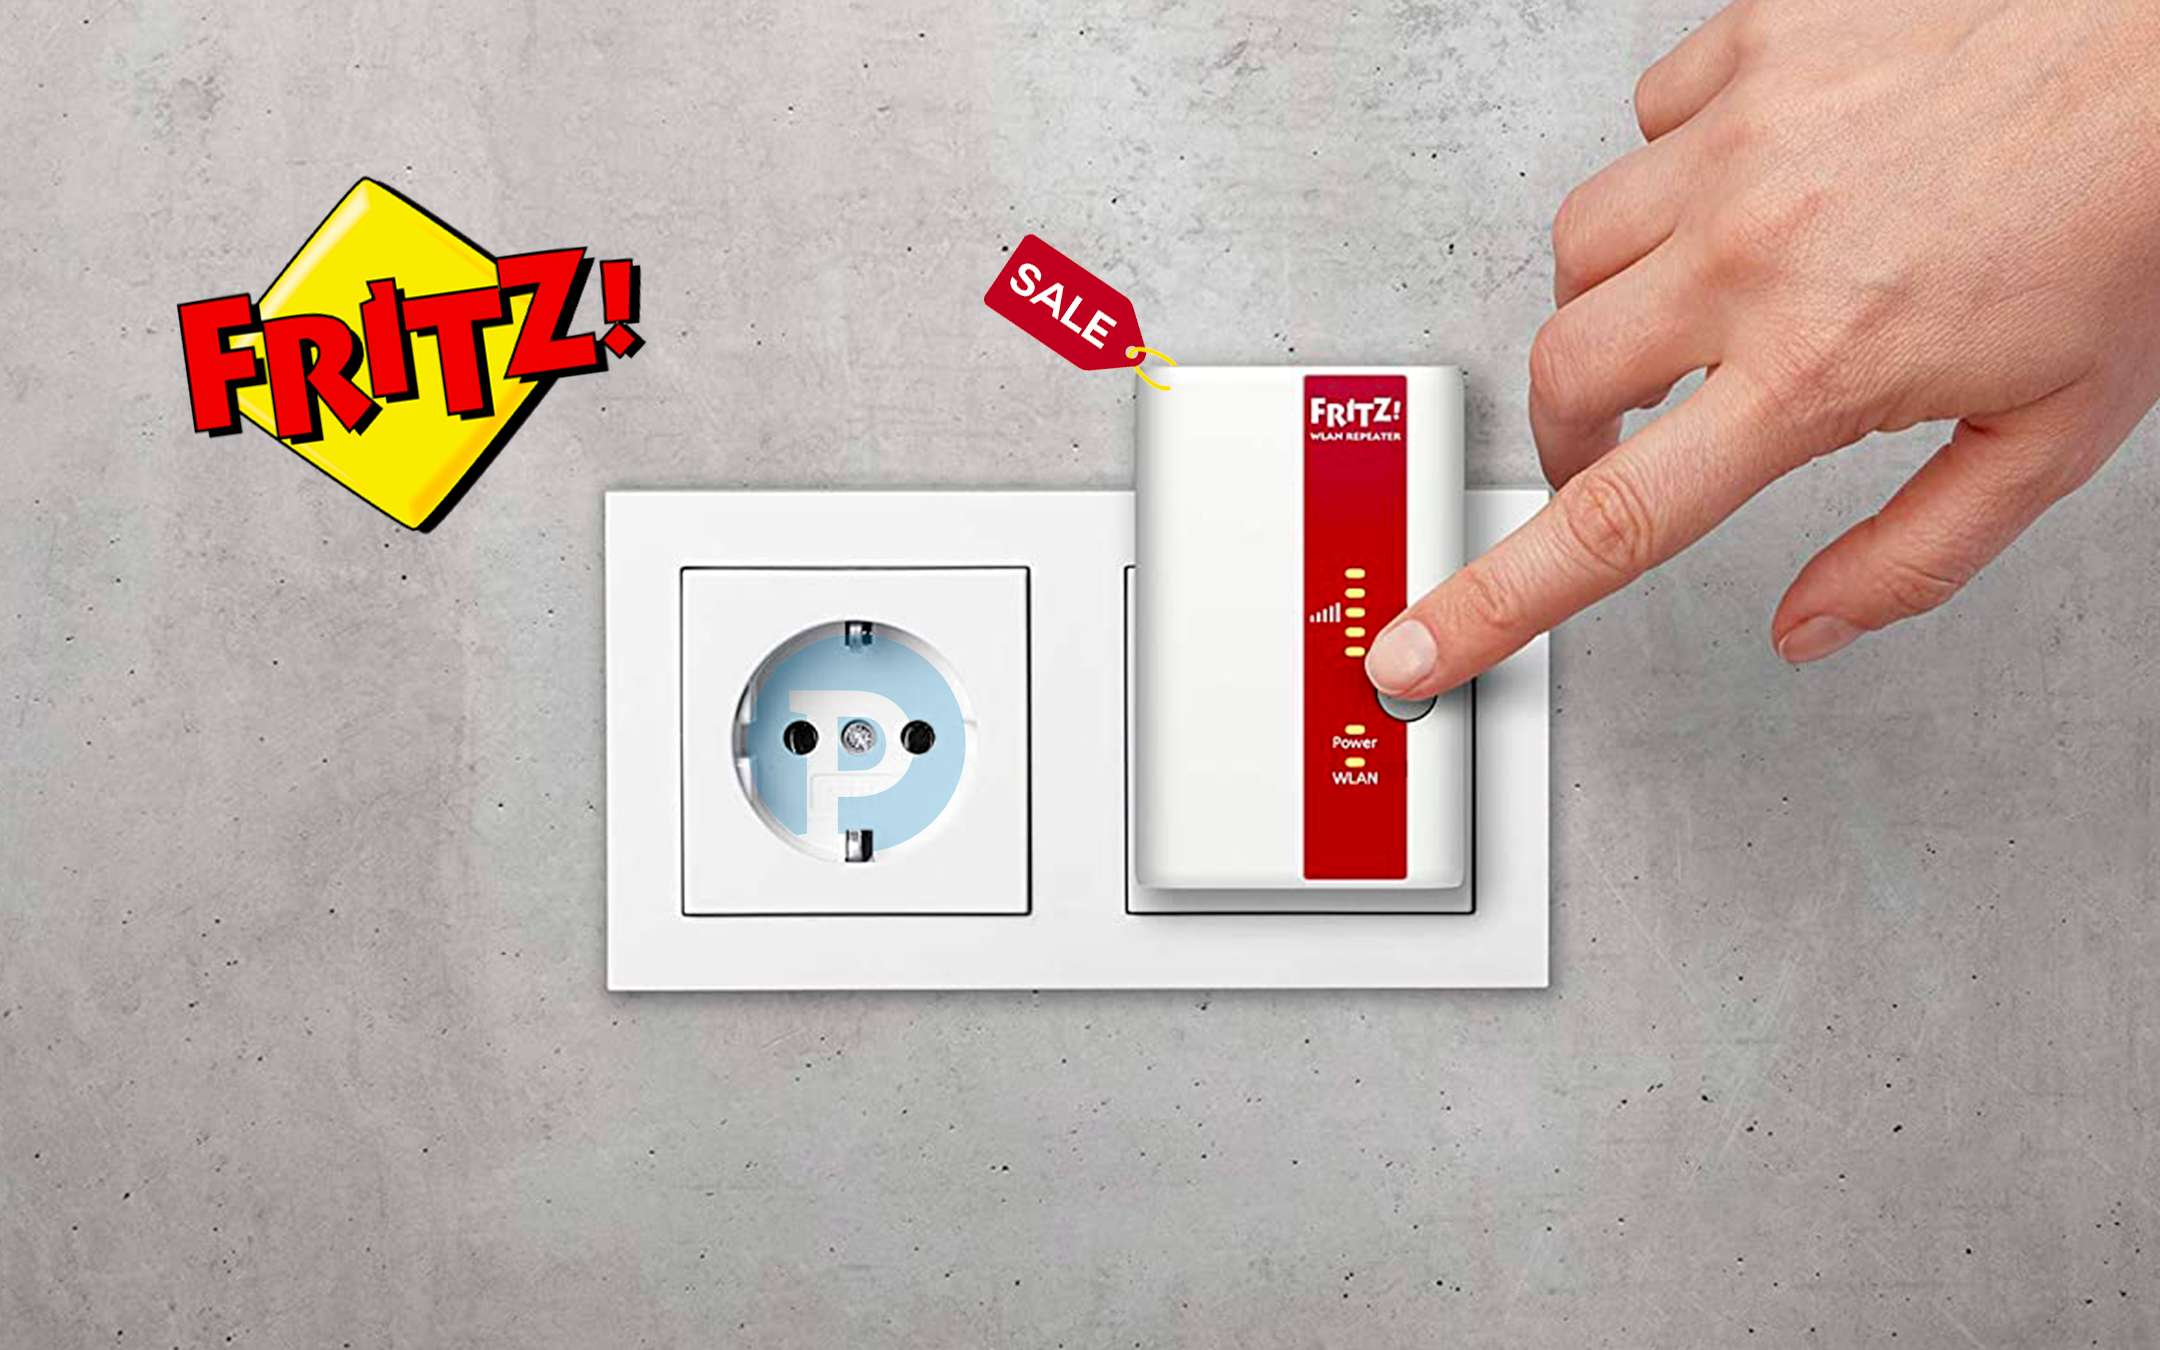 FRITZ! Repeater 310: WiFi repeater today at half price